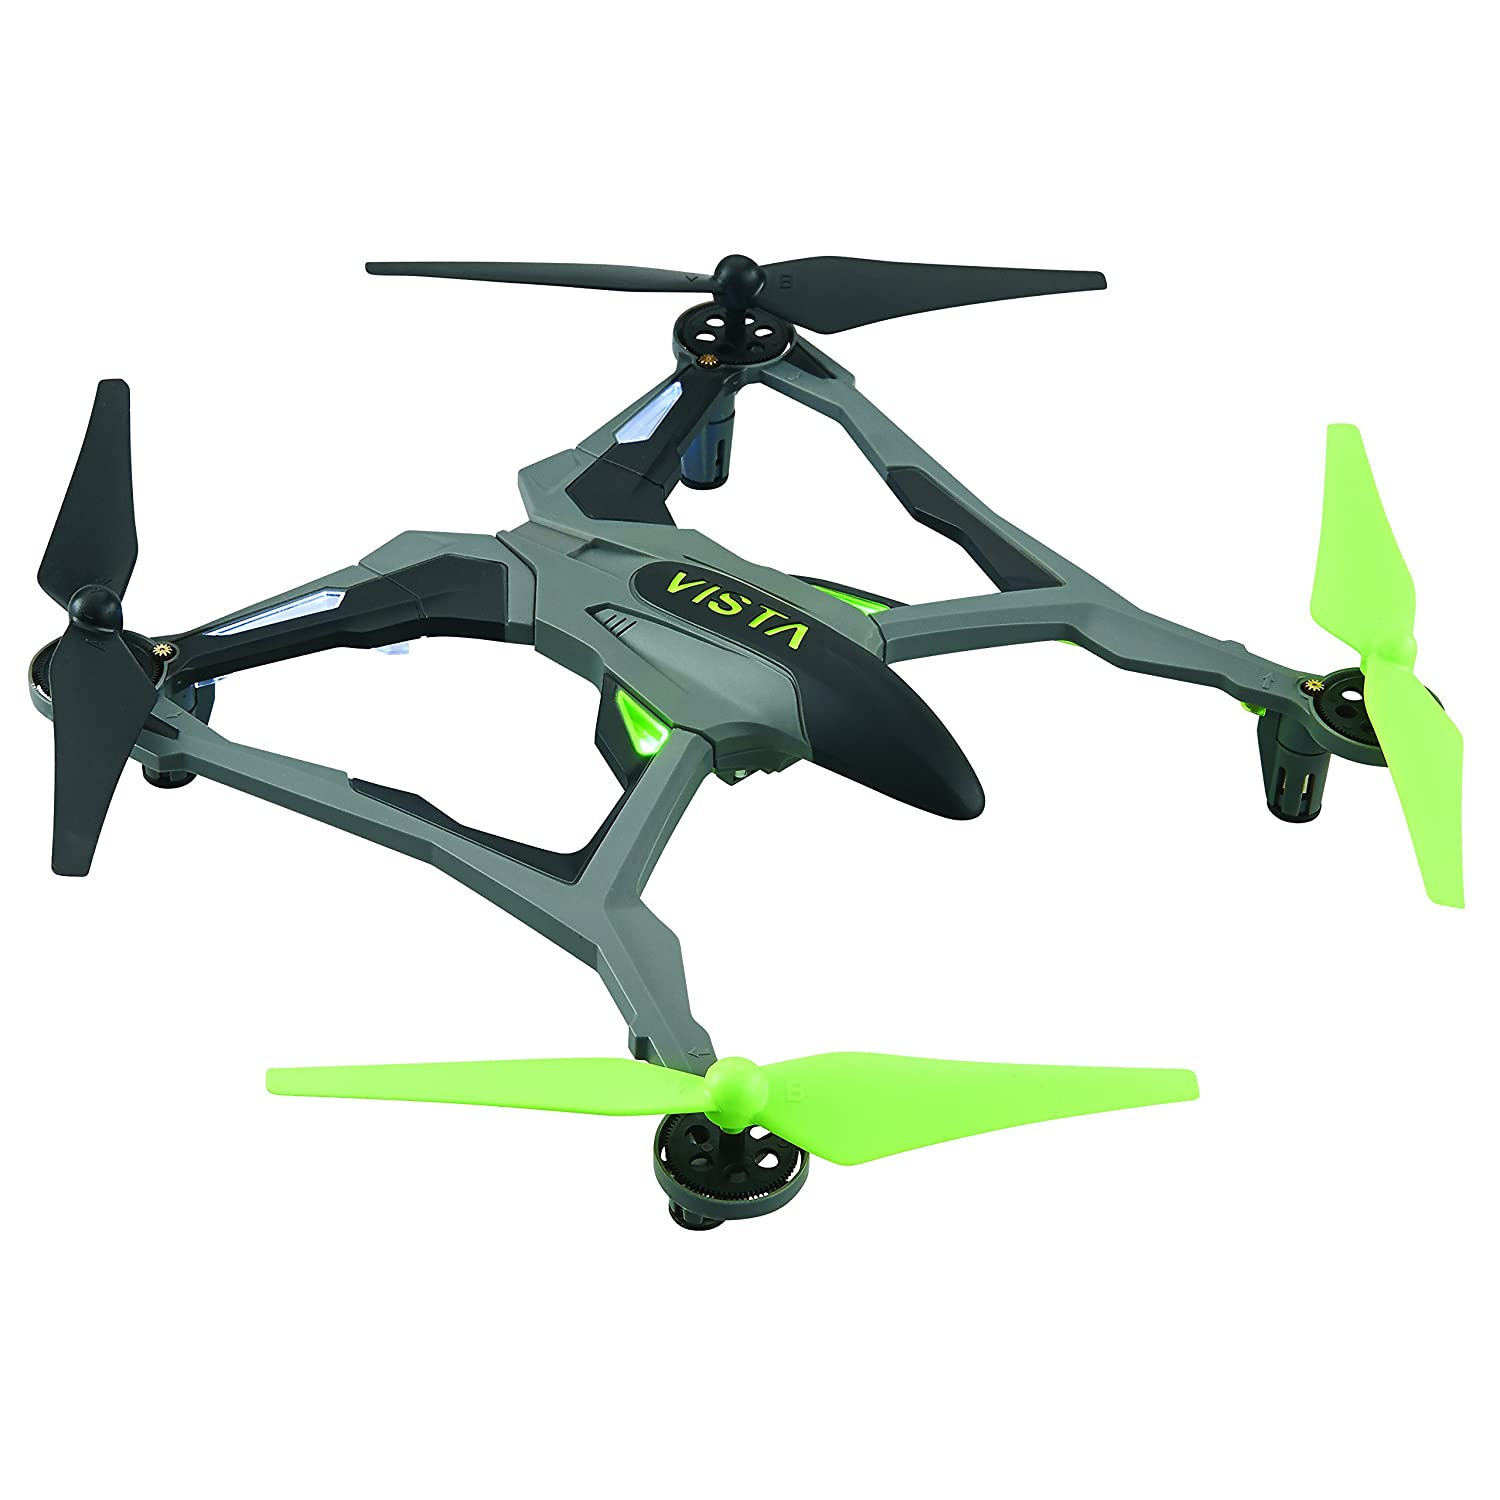 Dromida Vista Unmanned Aerial Vehicle (UAV) Quadcopter Ready-to-Fly (RTF) Drone...